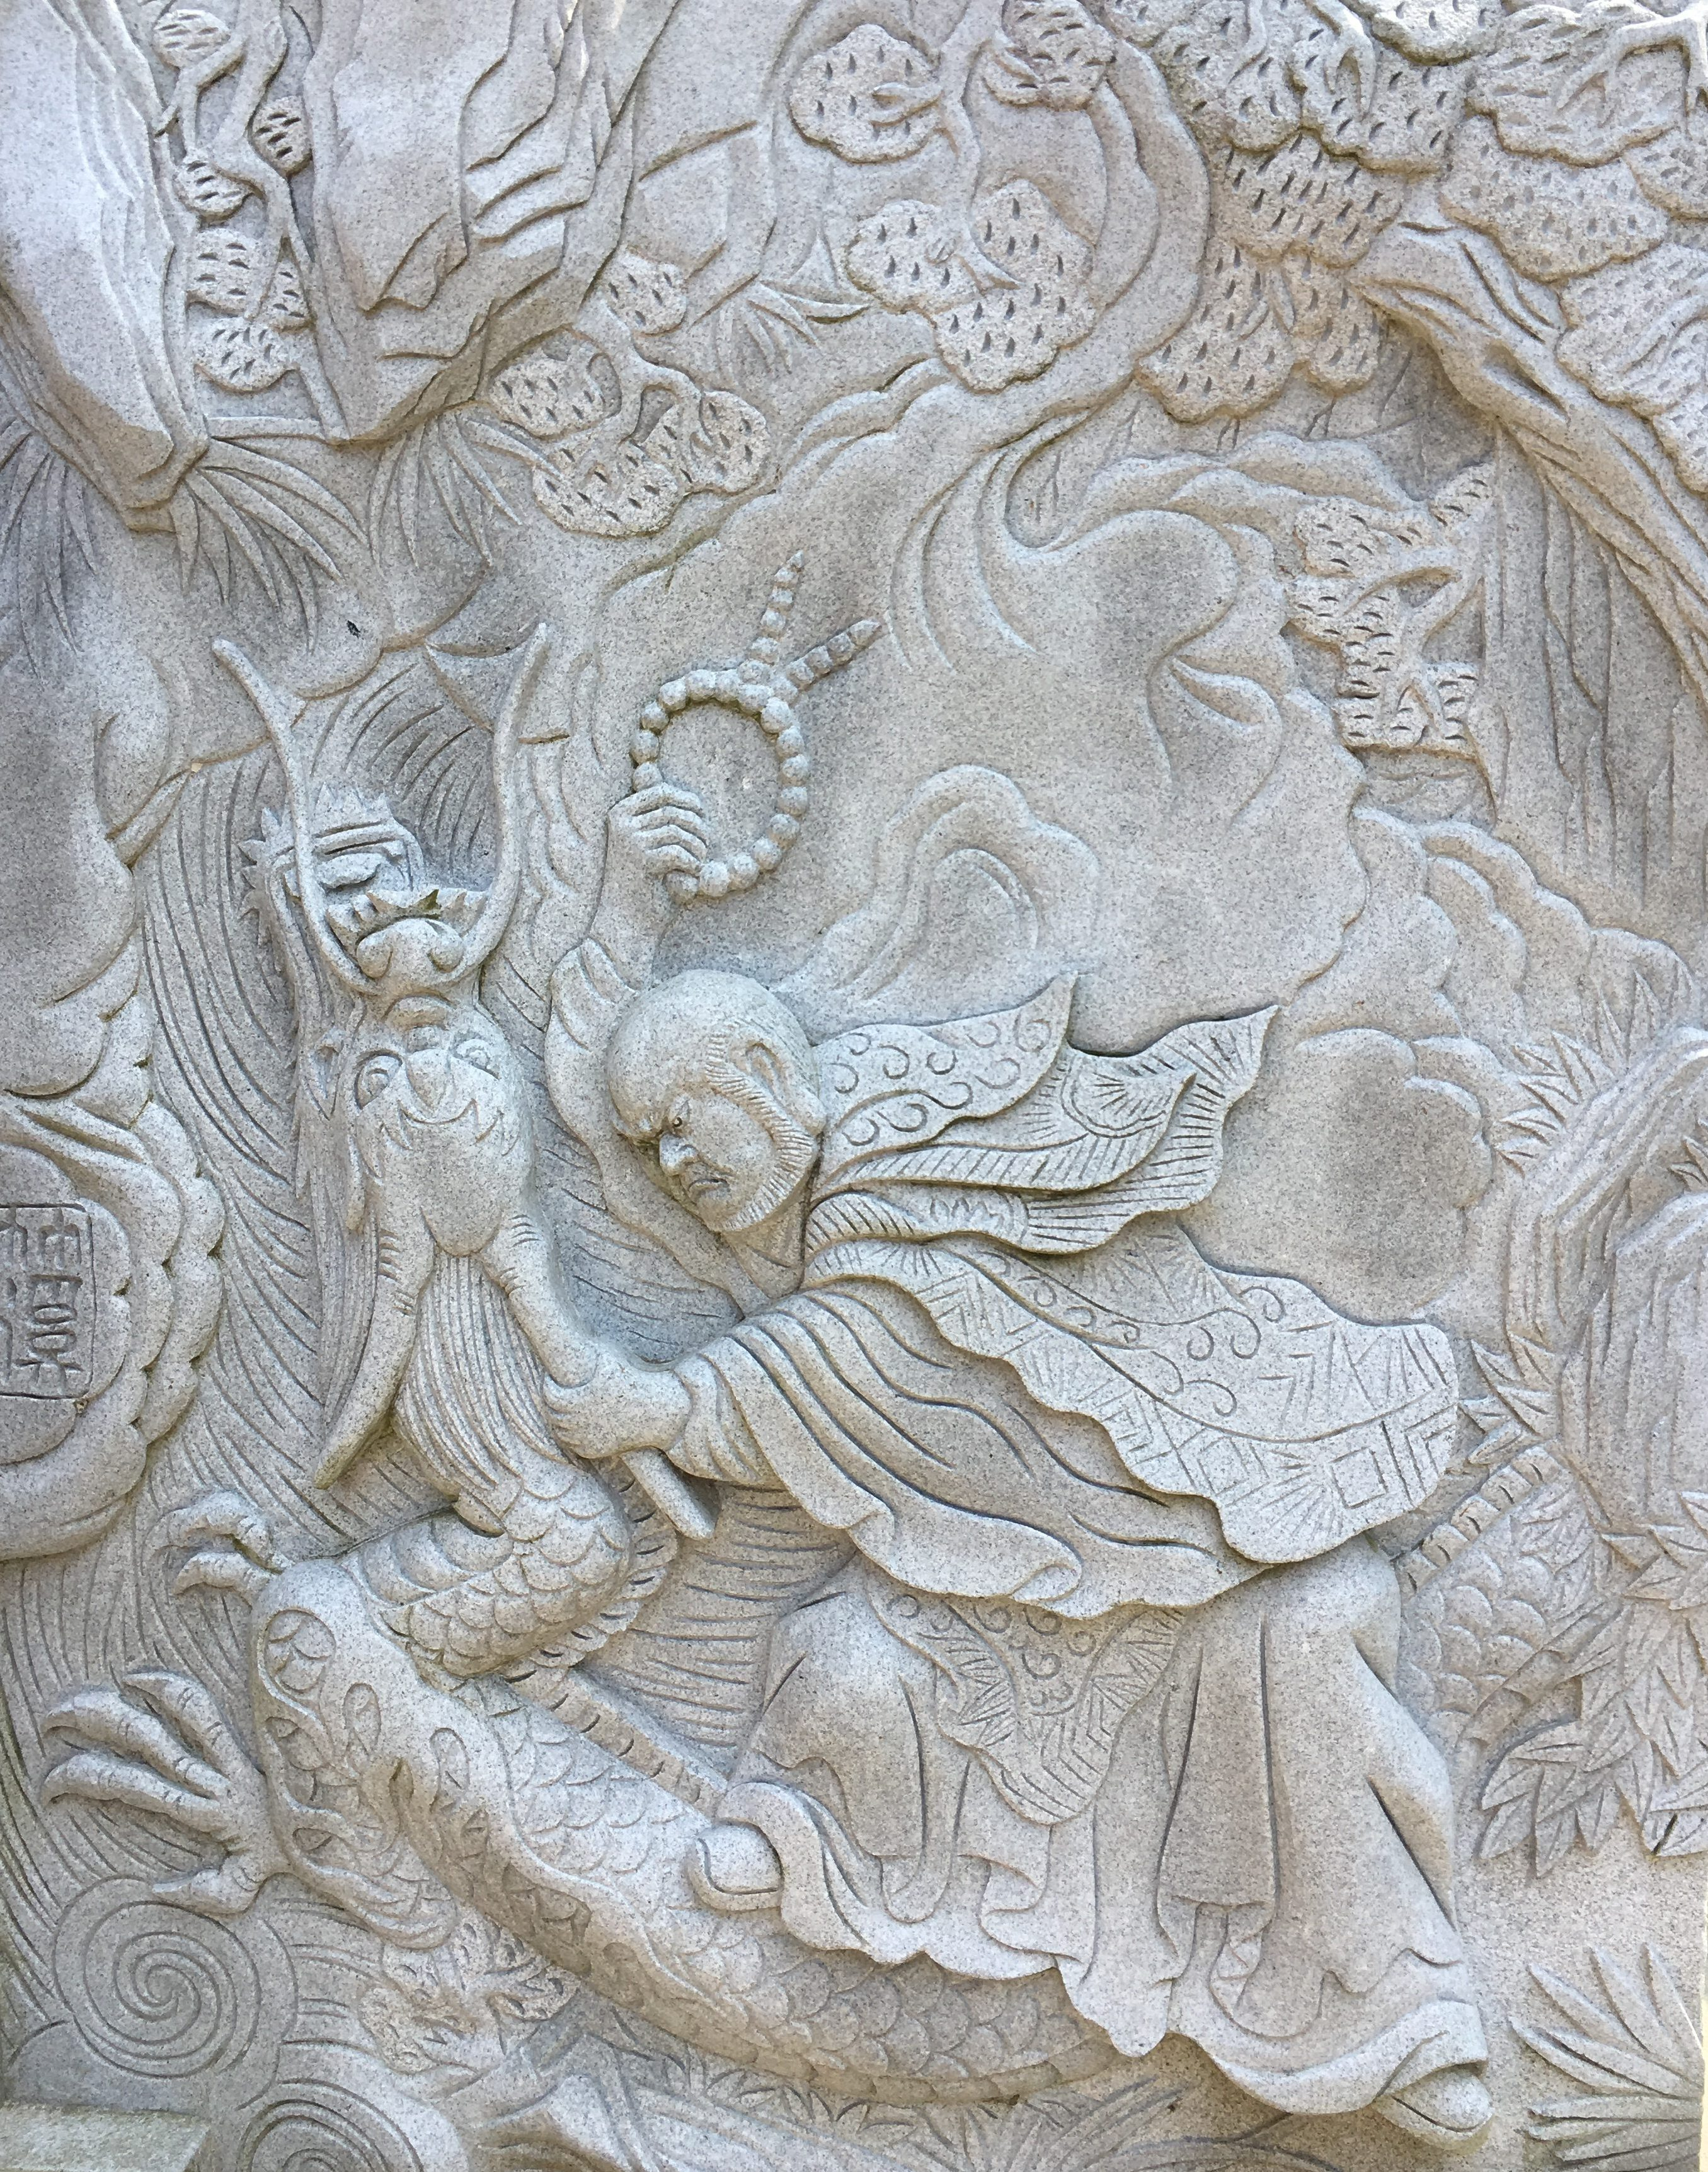 stone carving at oka-dera temple of monk gien battling a ferocious dragon